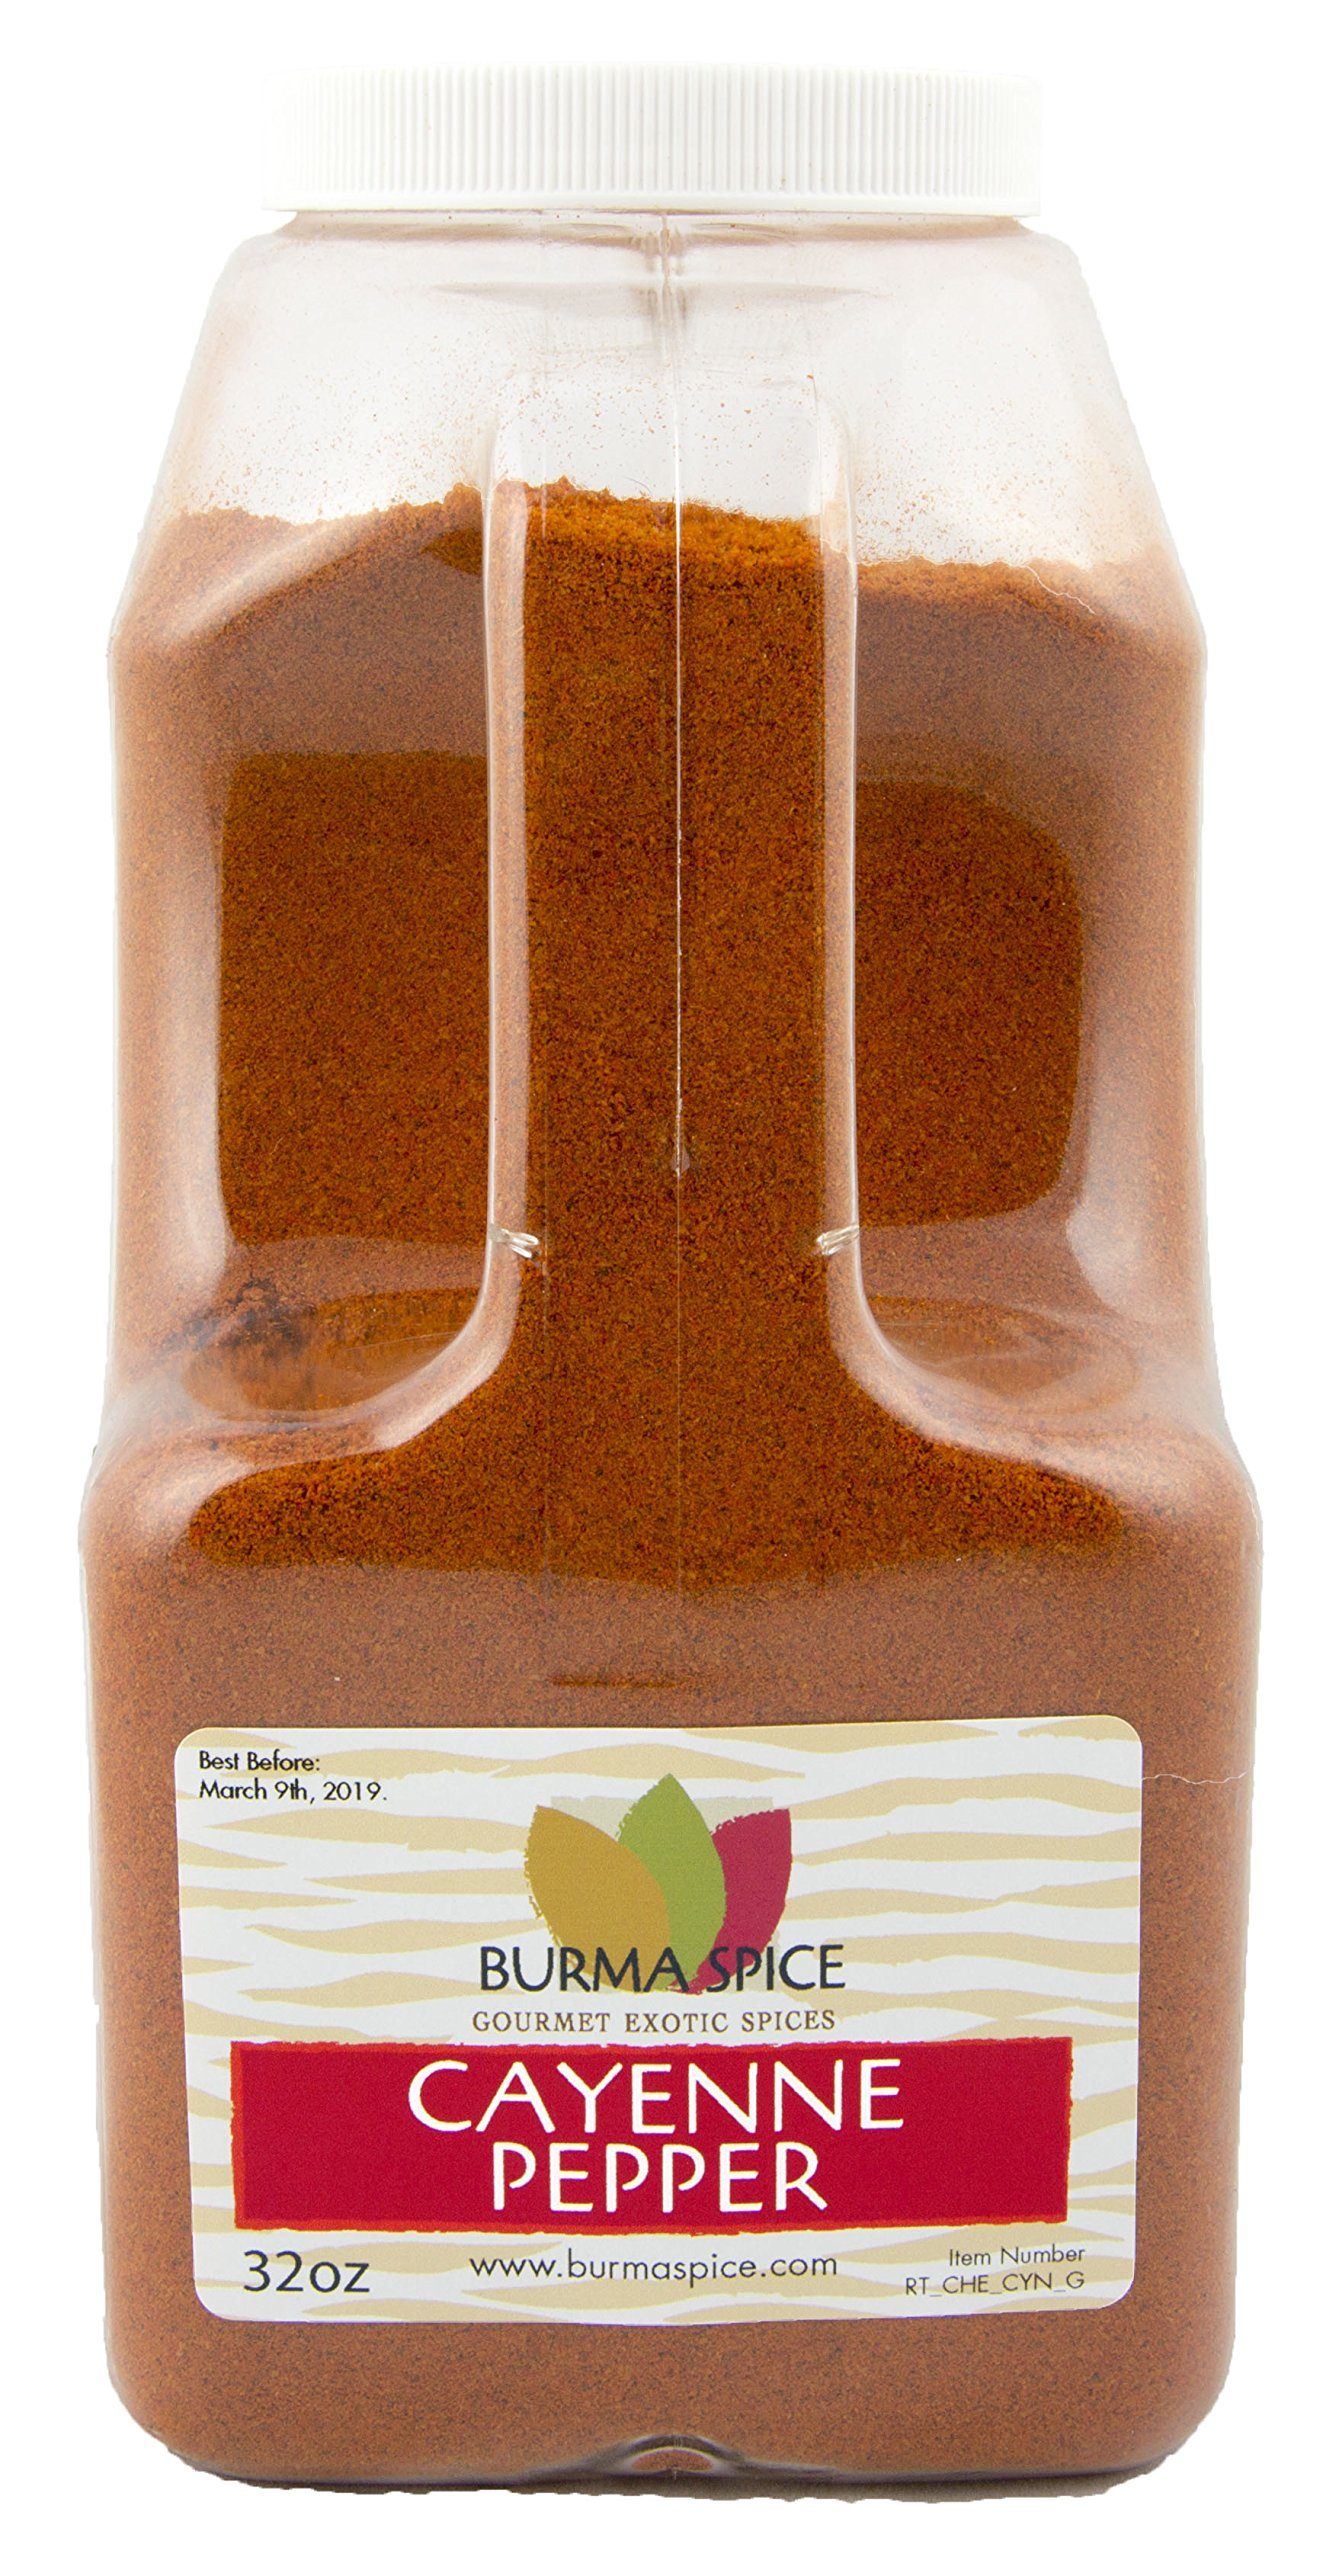 Ground Cayenne Pepper : SOME LIKE IT HOT! - This Cayenne pepper is hotter than most, its perfect to really kick it up a notch (32oz.)